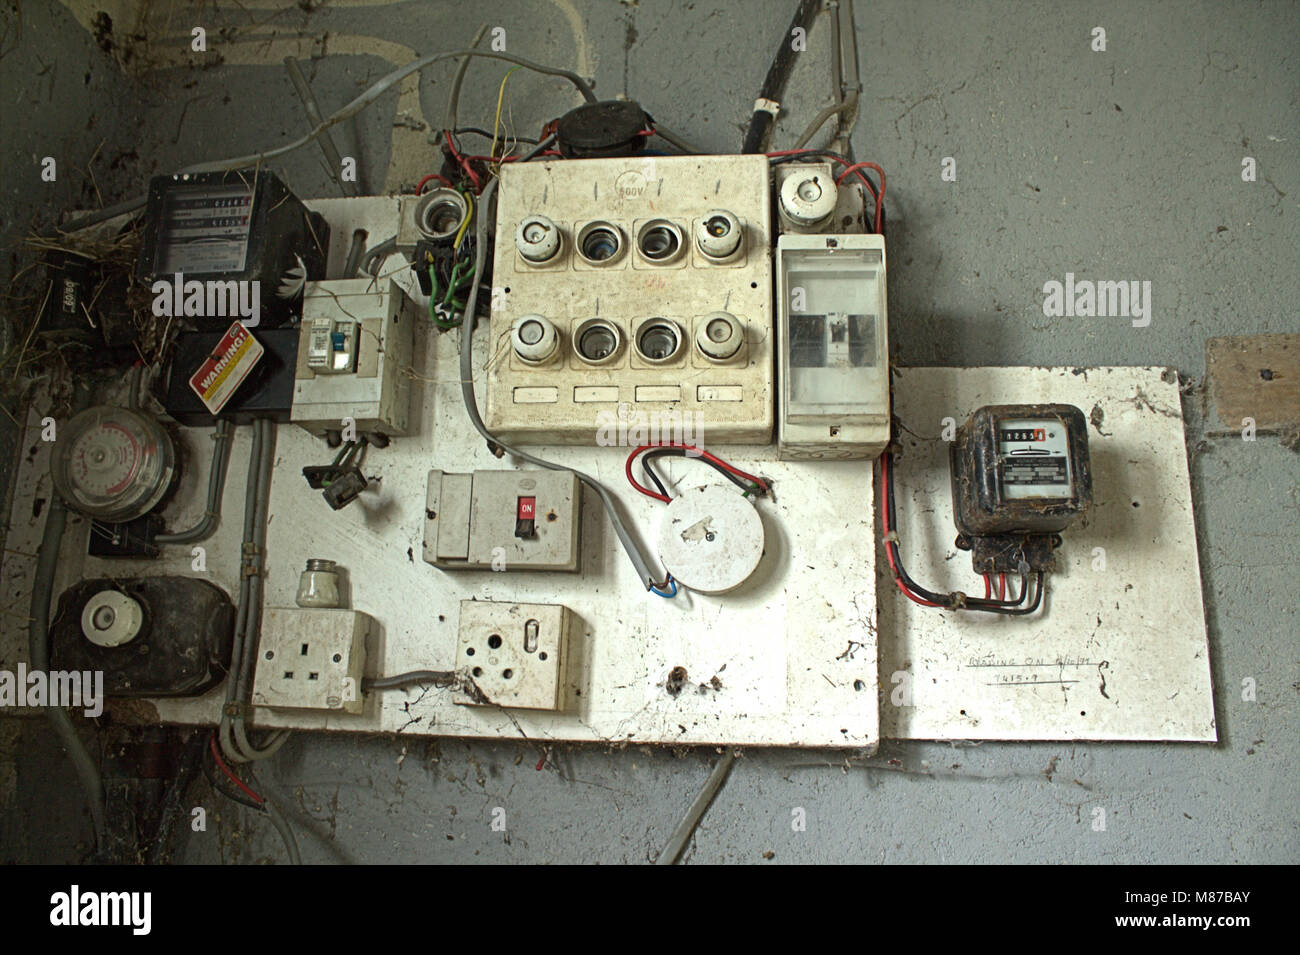 hight resolution of old fuses fuse box stock photos u0026 old fuses fuse box stock imagesold fuse board